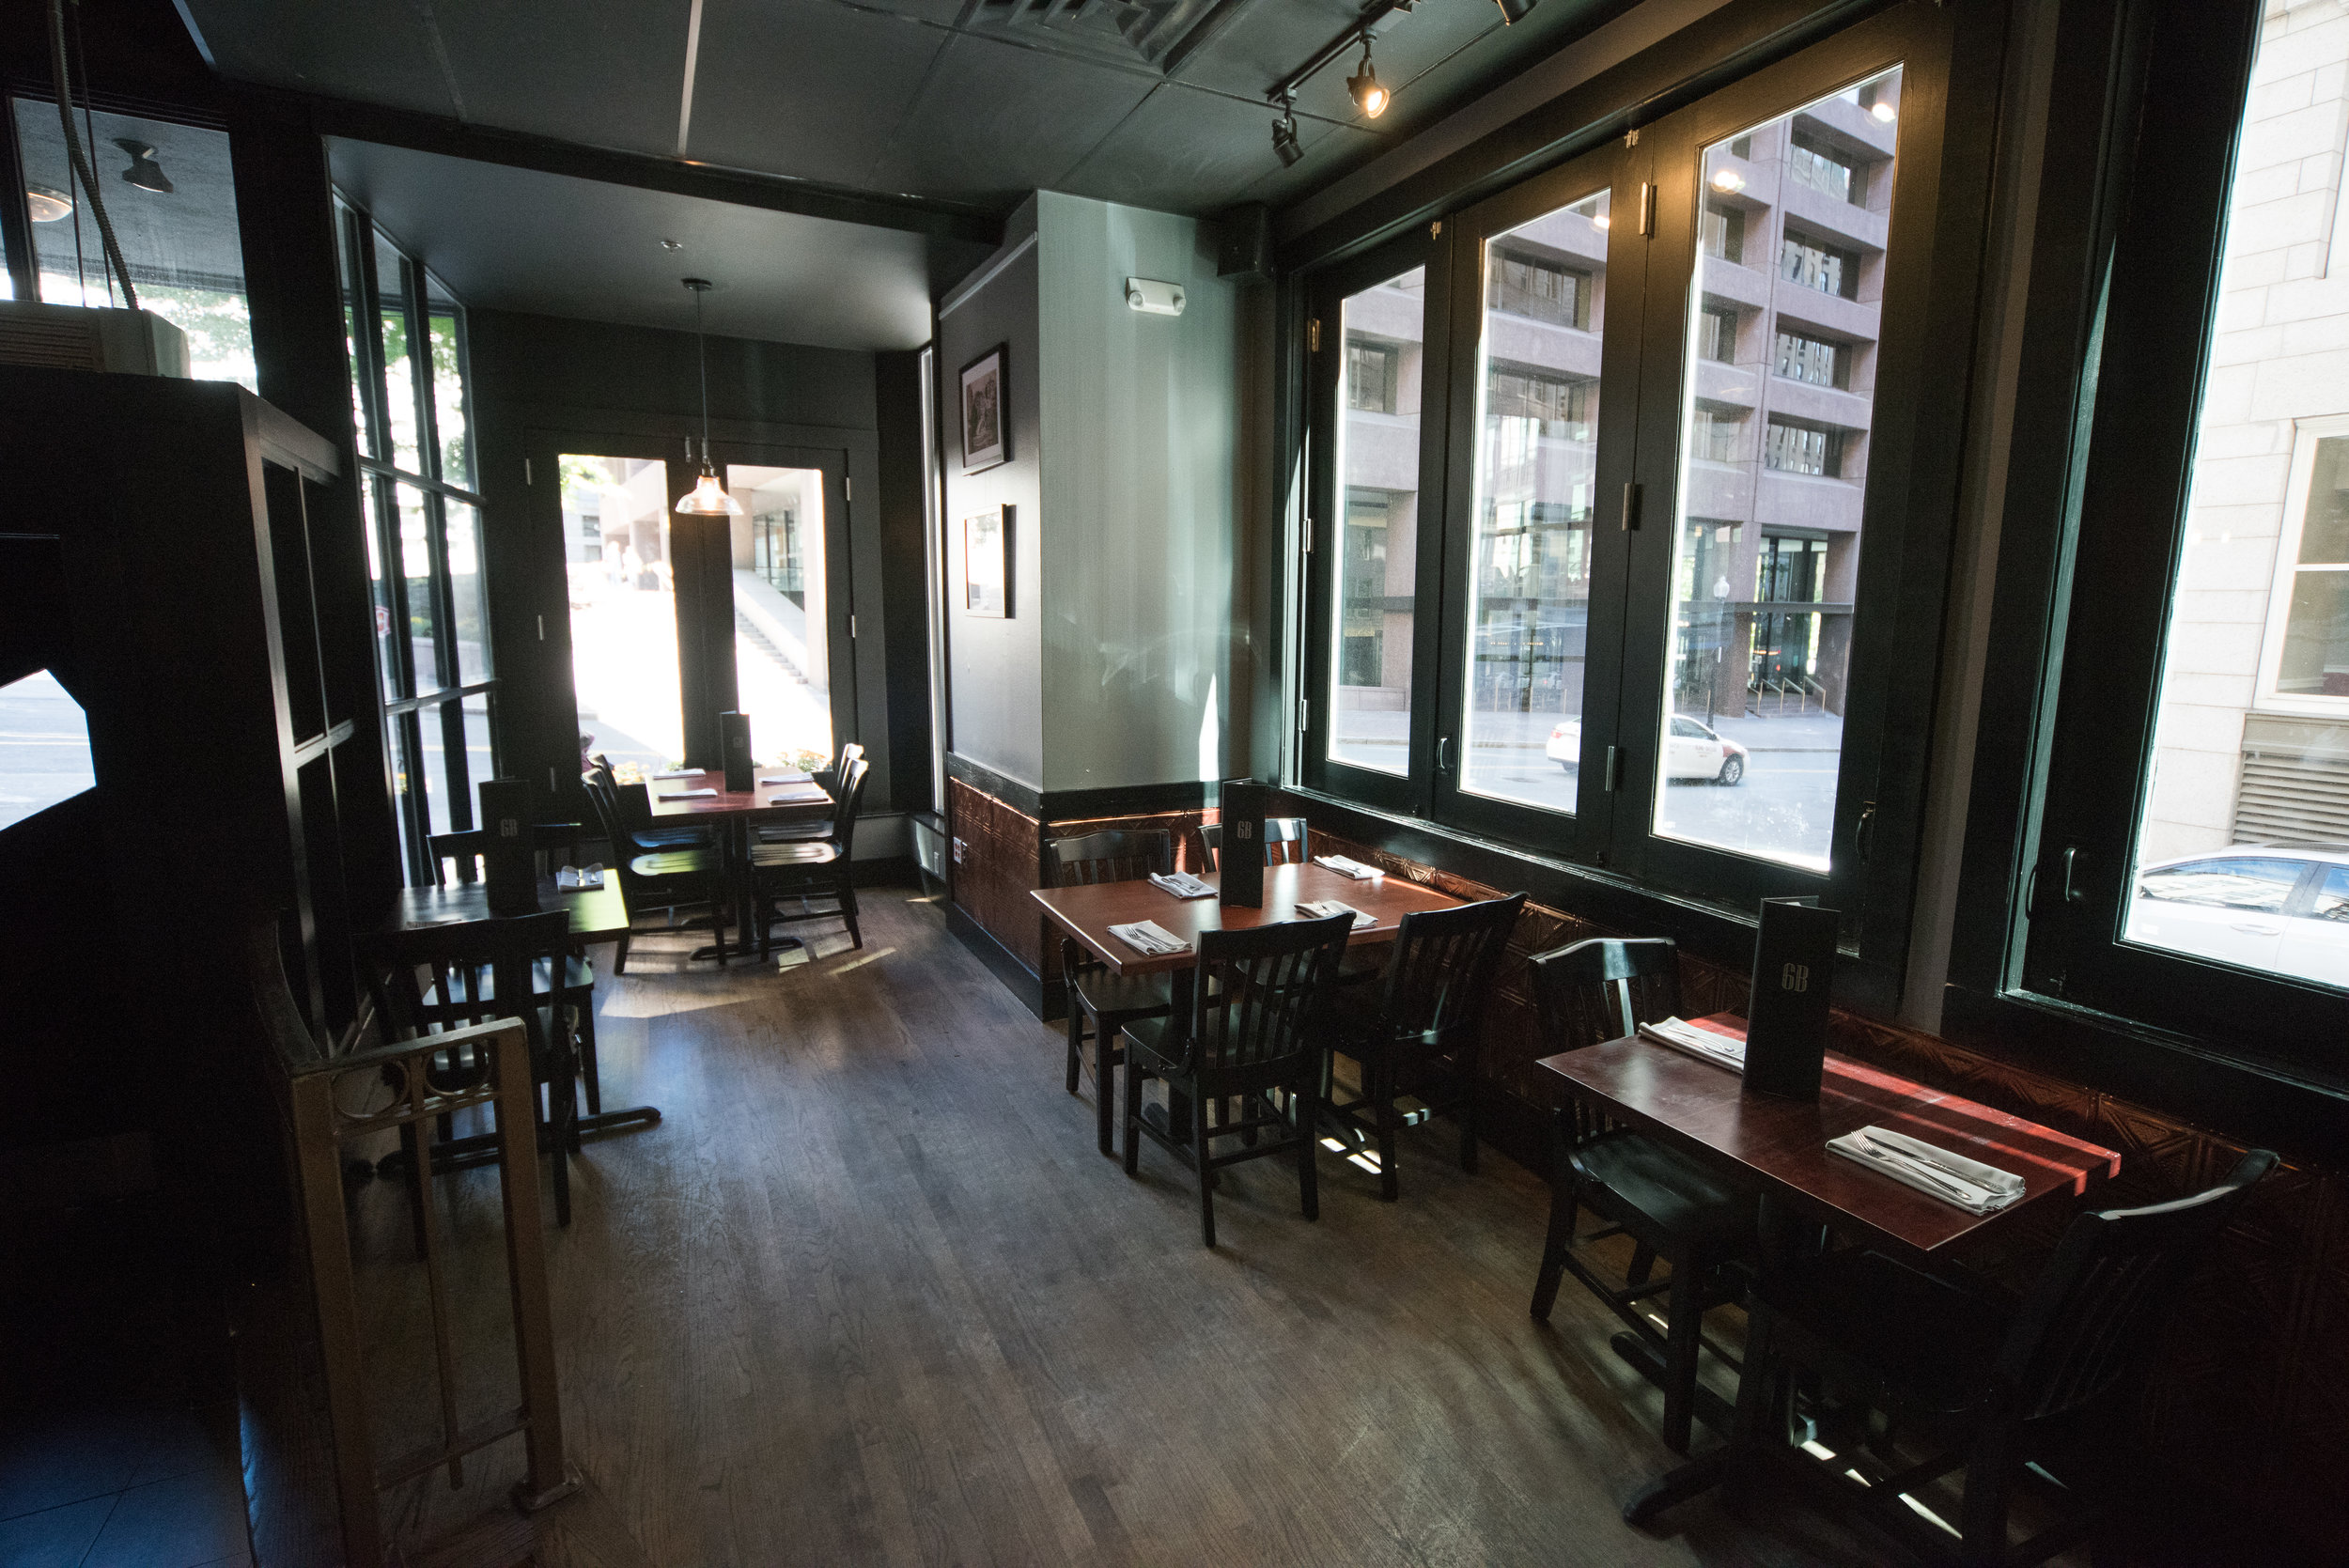 Event venue, 6B Lounge located in Boston's Beacon Hill